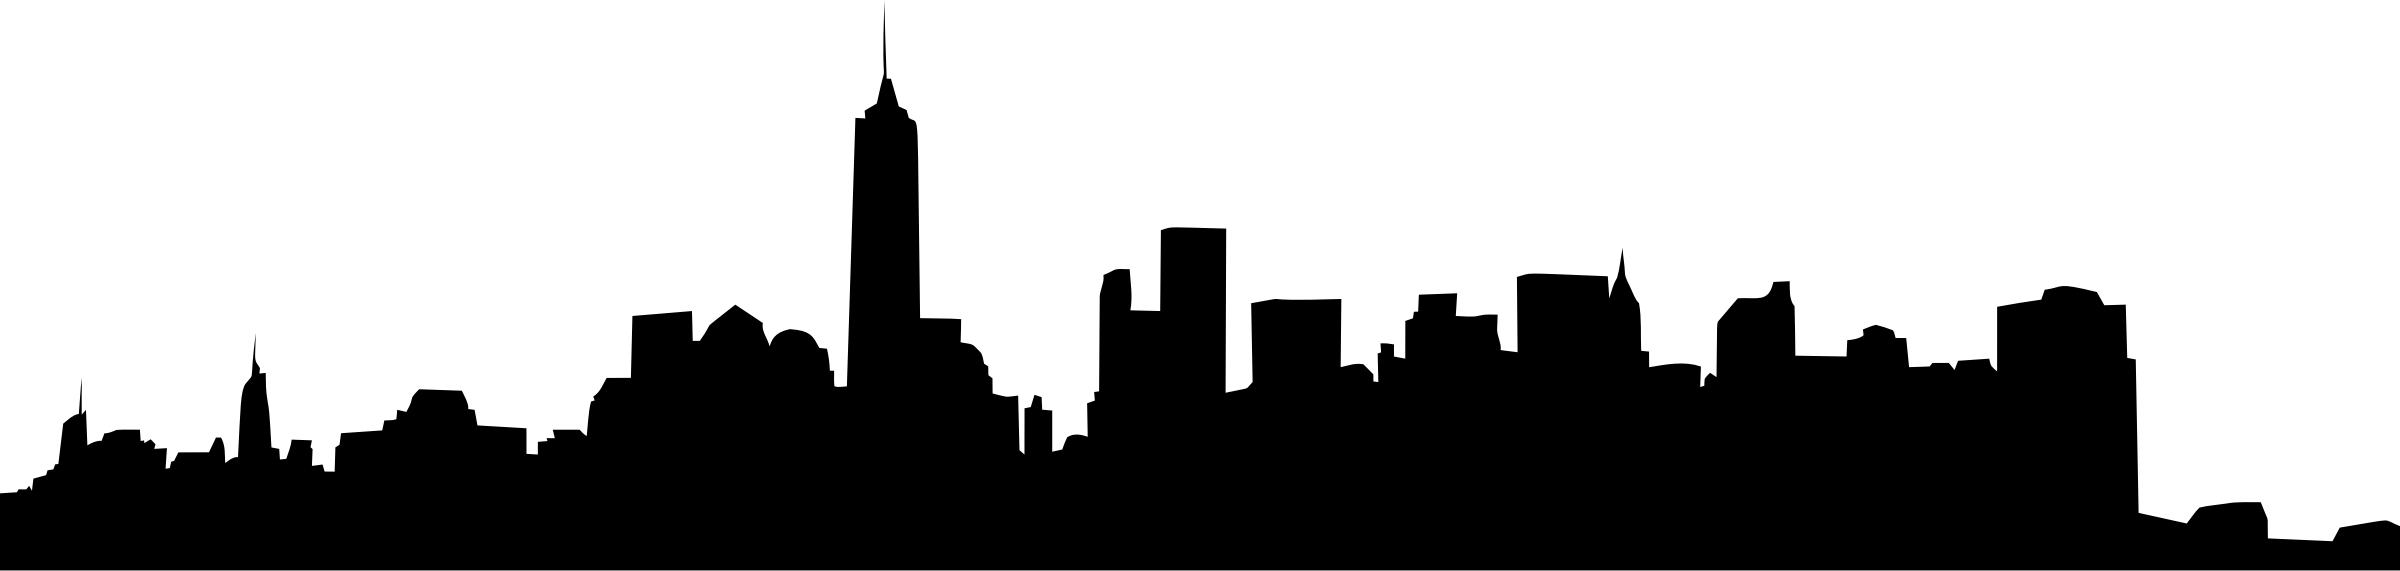 2400x571 Collection Of 'new York Skyline Silhouette' Download More Than